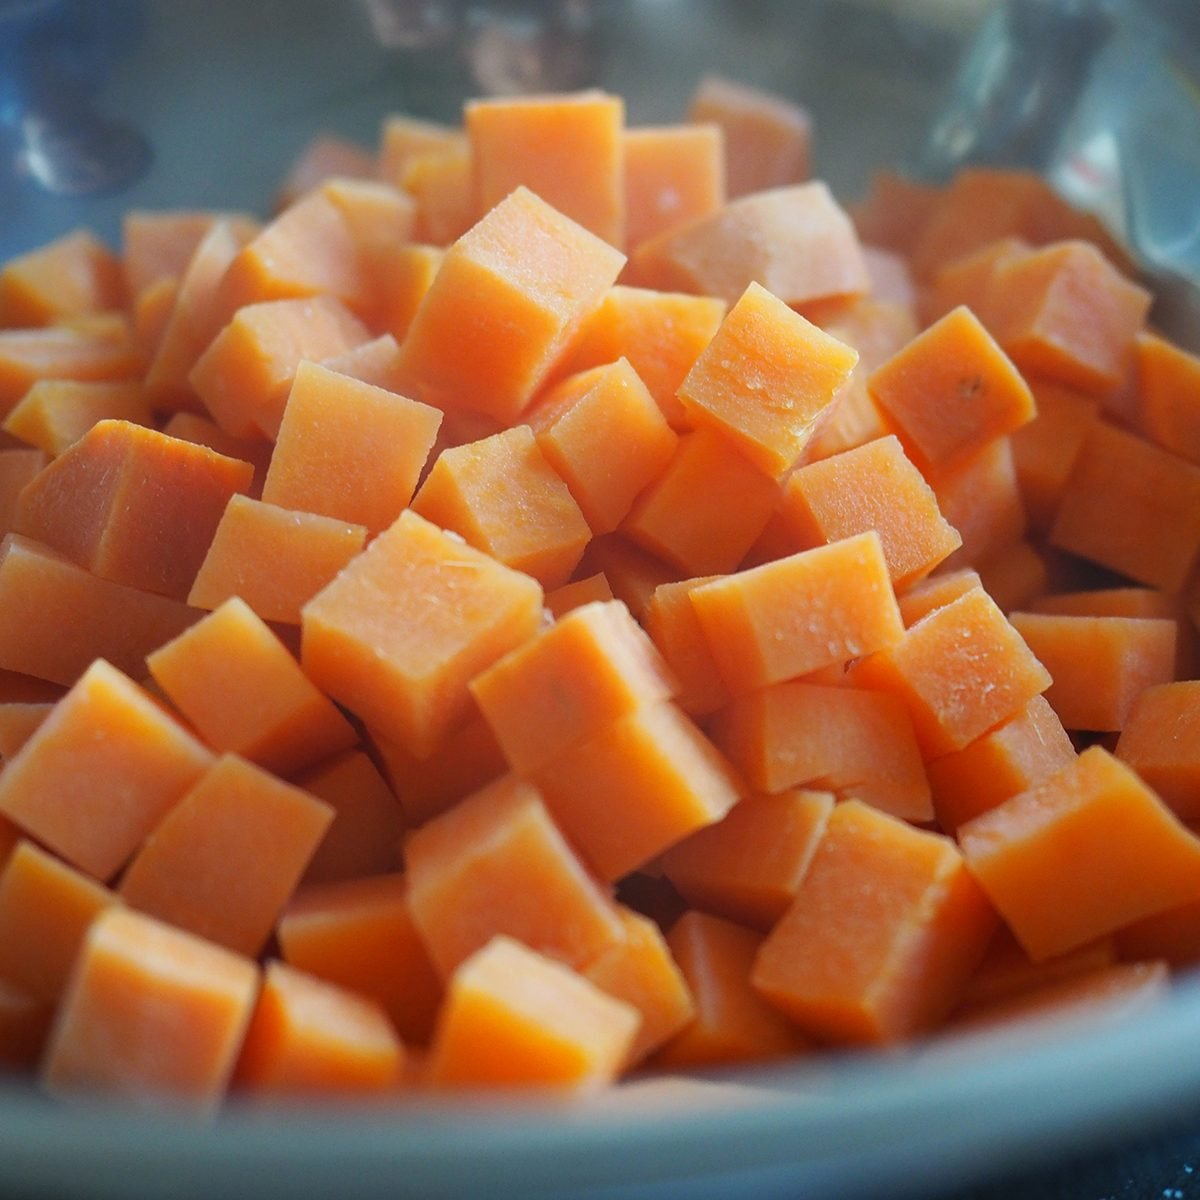 Orange Sweet Potato cut into small cubic shapes and boiled in hot water to soften the texture; Shutterstock ID 1318952024; Job (TFH, TOH, RD, BNB, CWM, CM): TOH